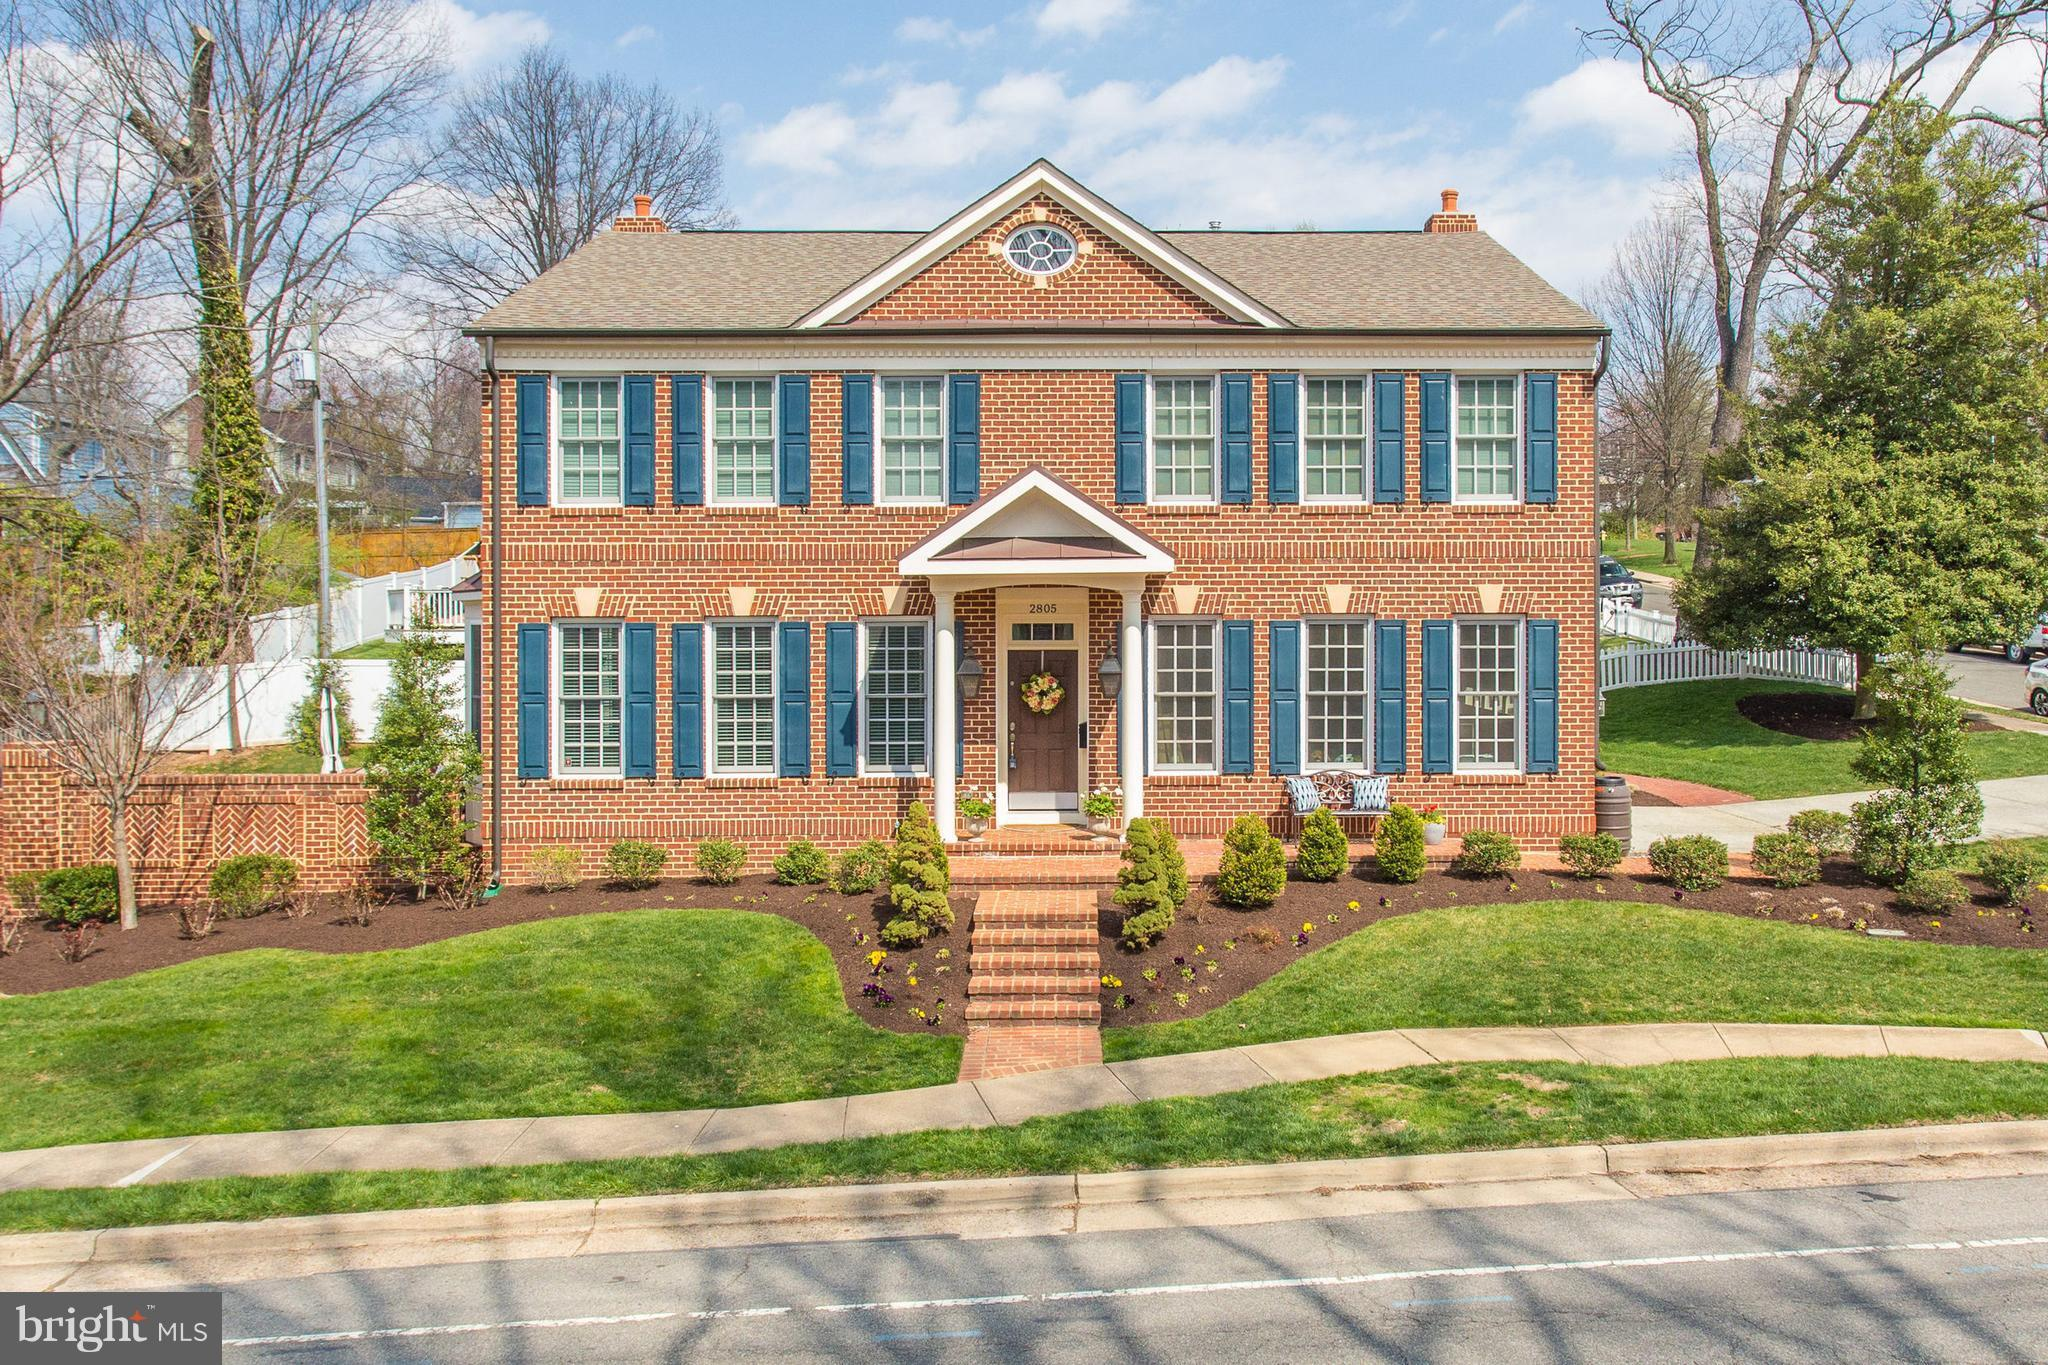 2012 all-brick Colonial w/ over $315K in upgrades. Like new! Open main lvl w/ 9-10' ceilings, chef's kitchen w/ granite, Wolf & Sub-Zero appliances, breakfast & family rm w/ gas fp. 2 w-i closets, tray ceiling & spa-like bath in MBR, hallway built-ins, walkout LL w/ wine cellar, rec rm, guest suite & storage. Lg & fully fenced private yard w/ outdoor fireplace & patio. MOTIVATED SELLER